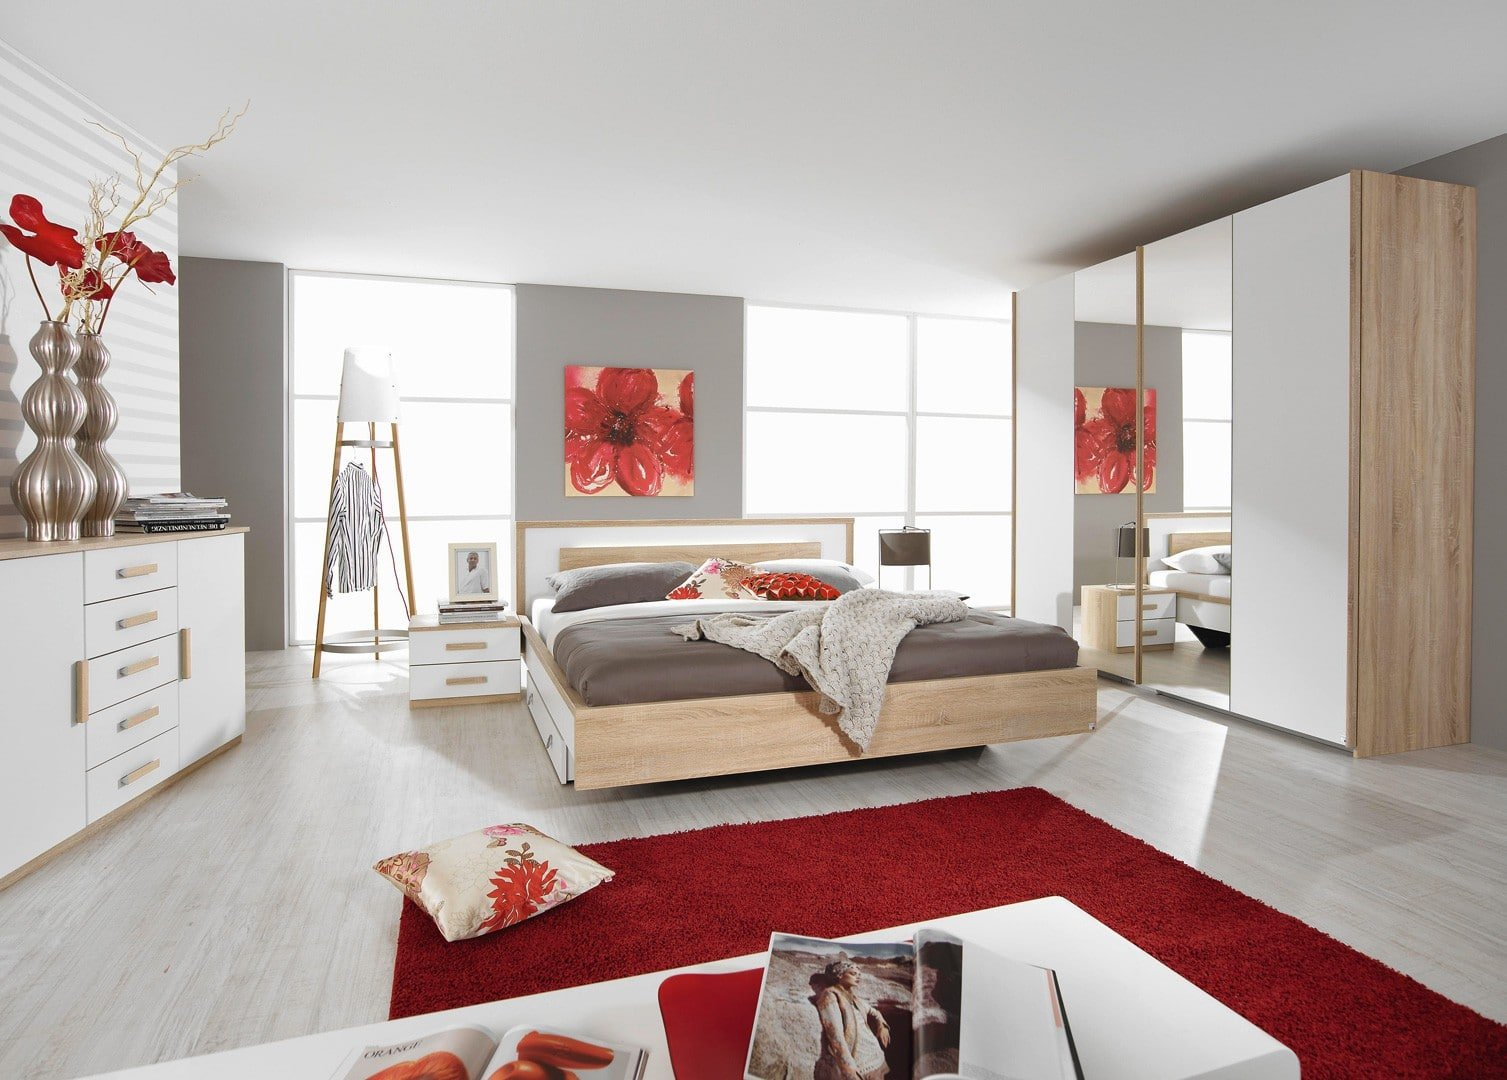 chambre d adulte moderne maison design. Black Bedroom Furniture Sets. Home Design Ideas